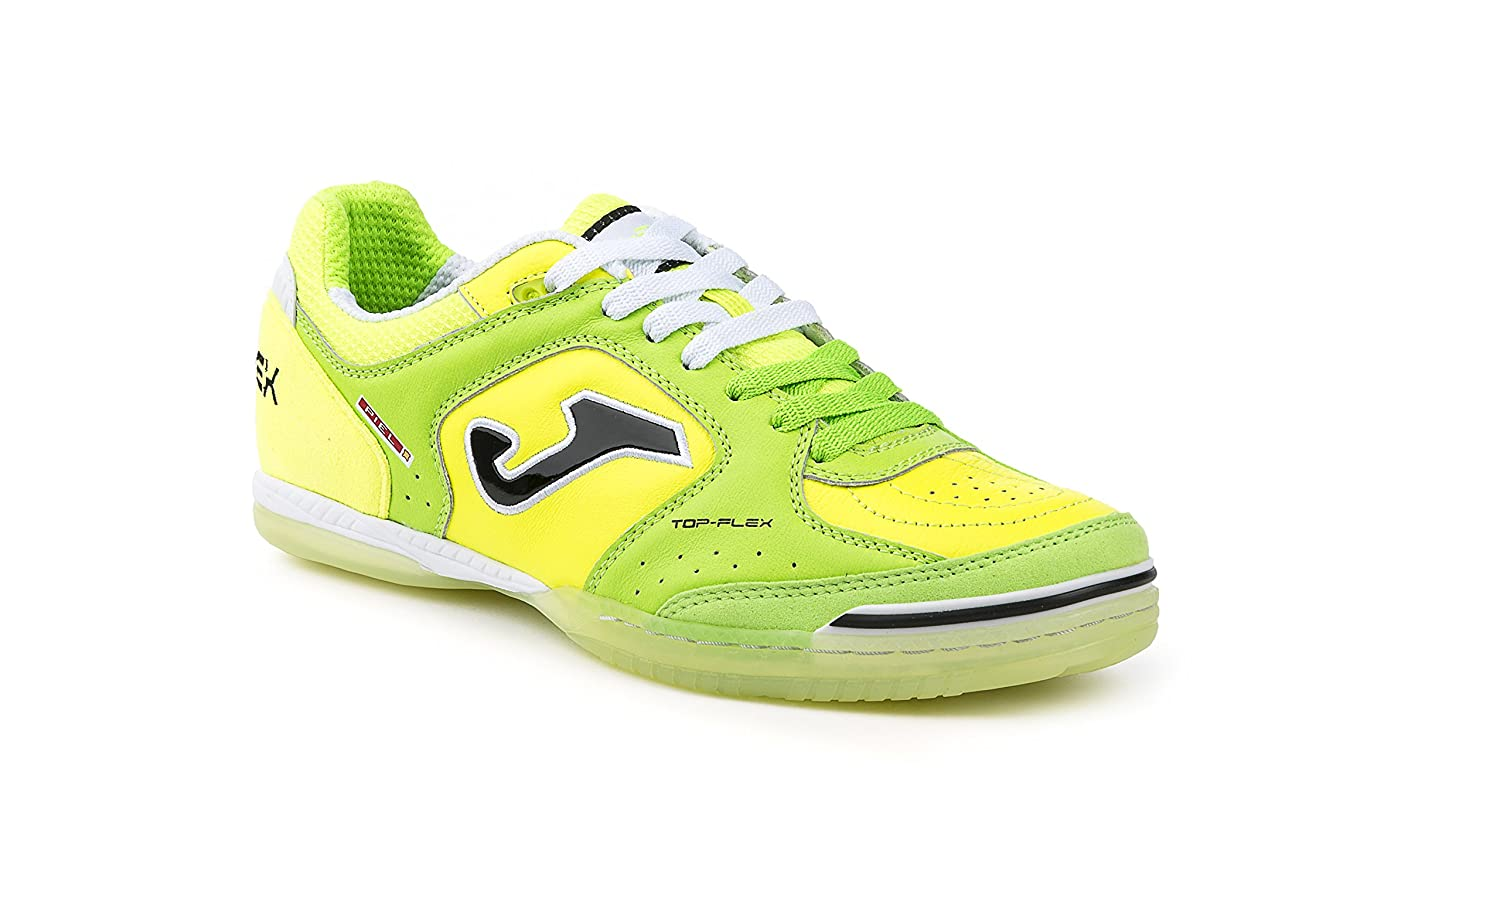 Scarpe da calcetto JOMA TOP FLEX 611 VERDE-GIALLO INDOOR